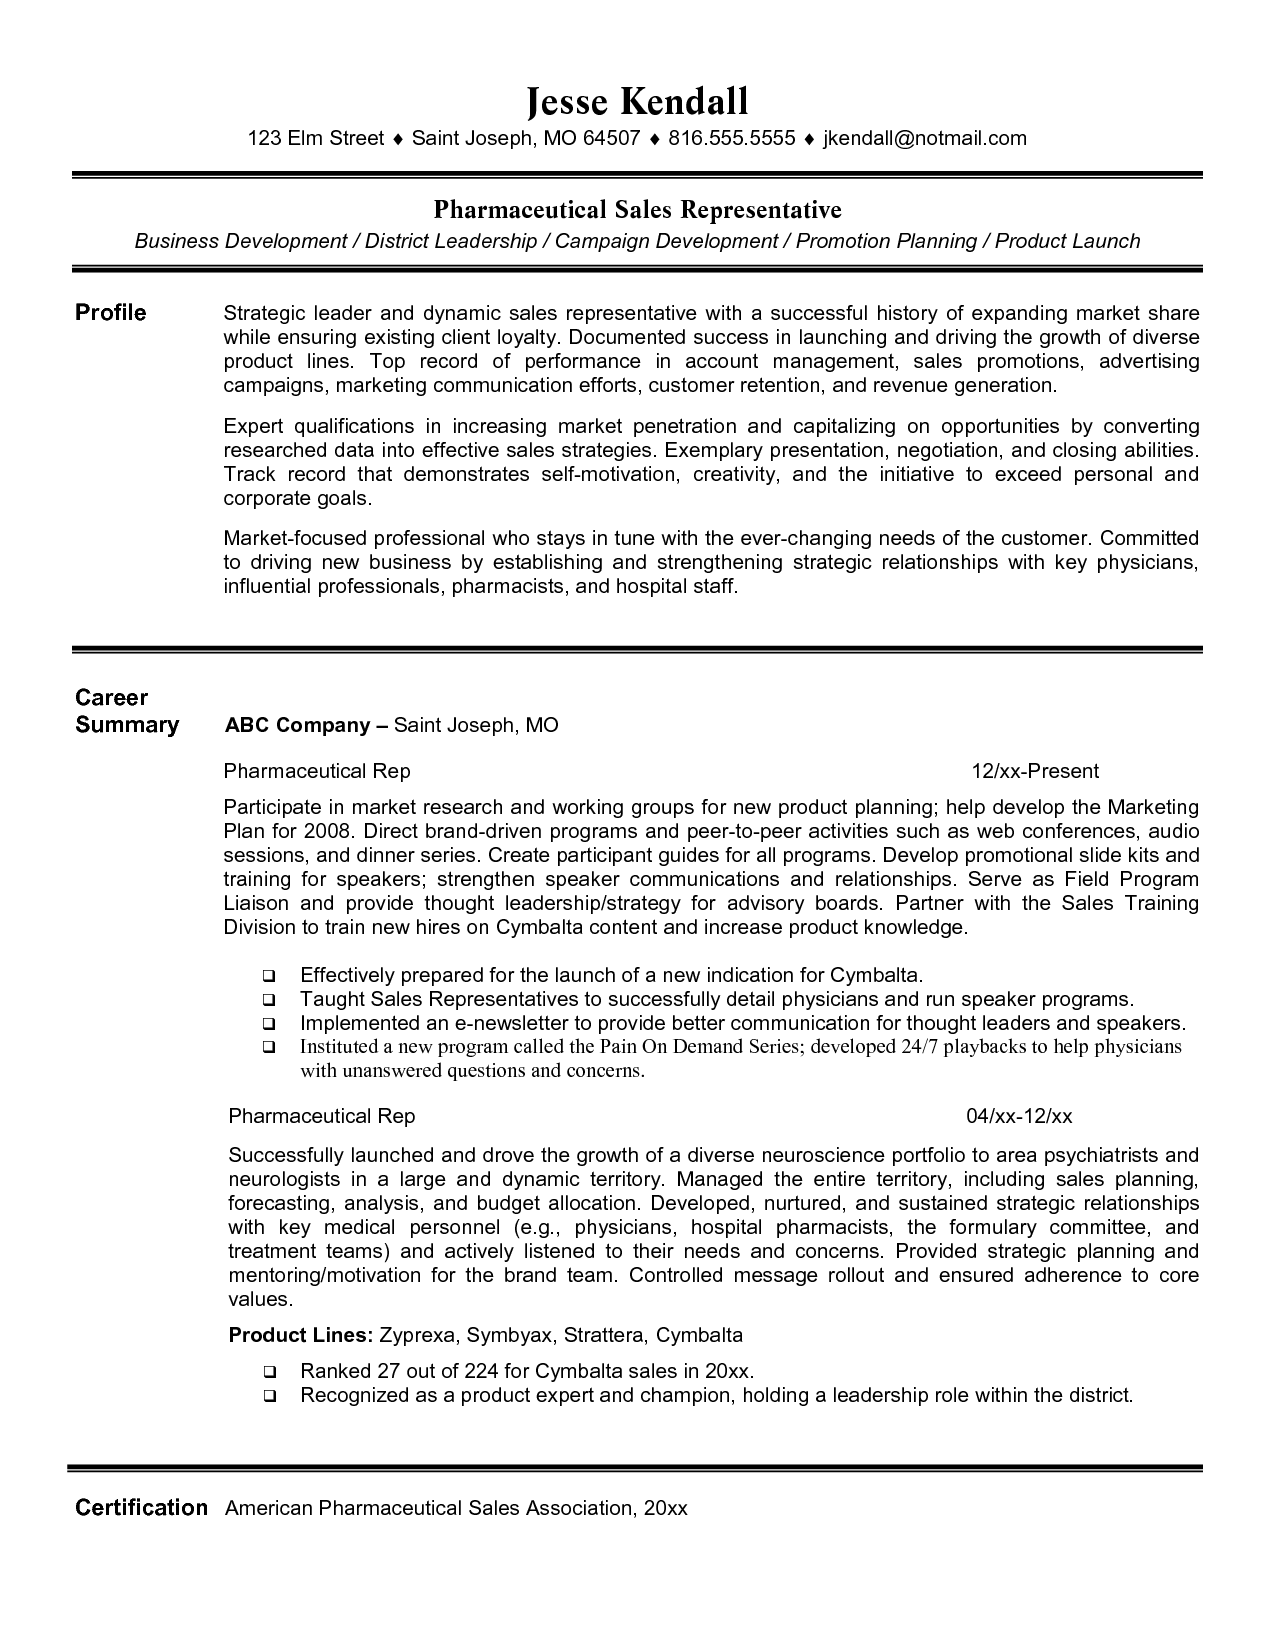 Pharmaceutical Sales Rep Resume Sample Entry Level Pharmaceutical